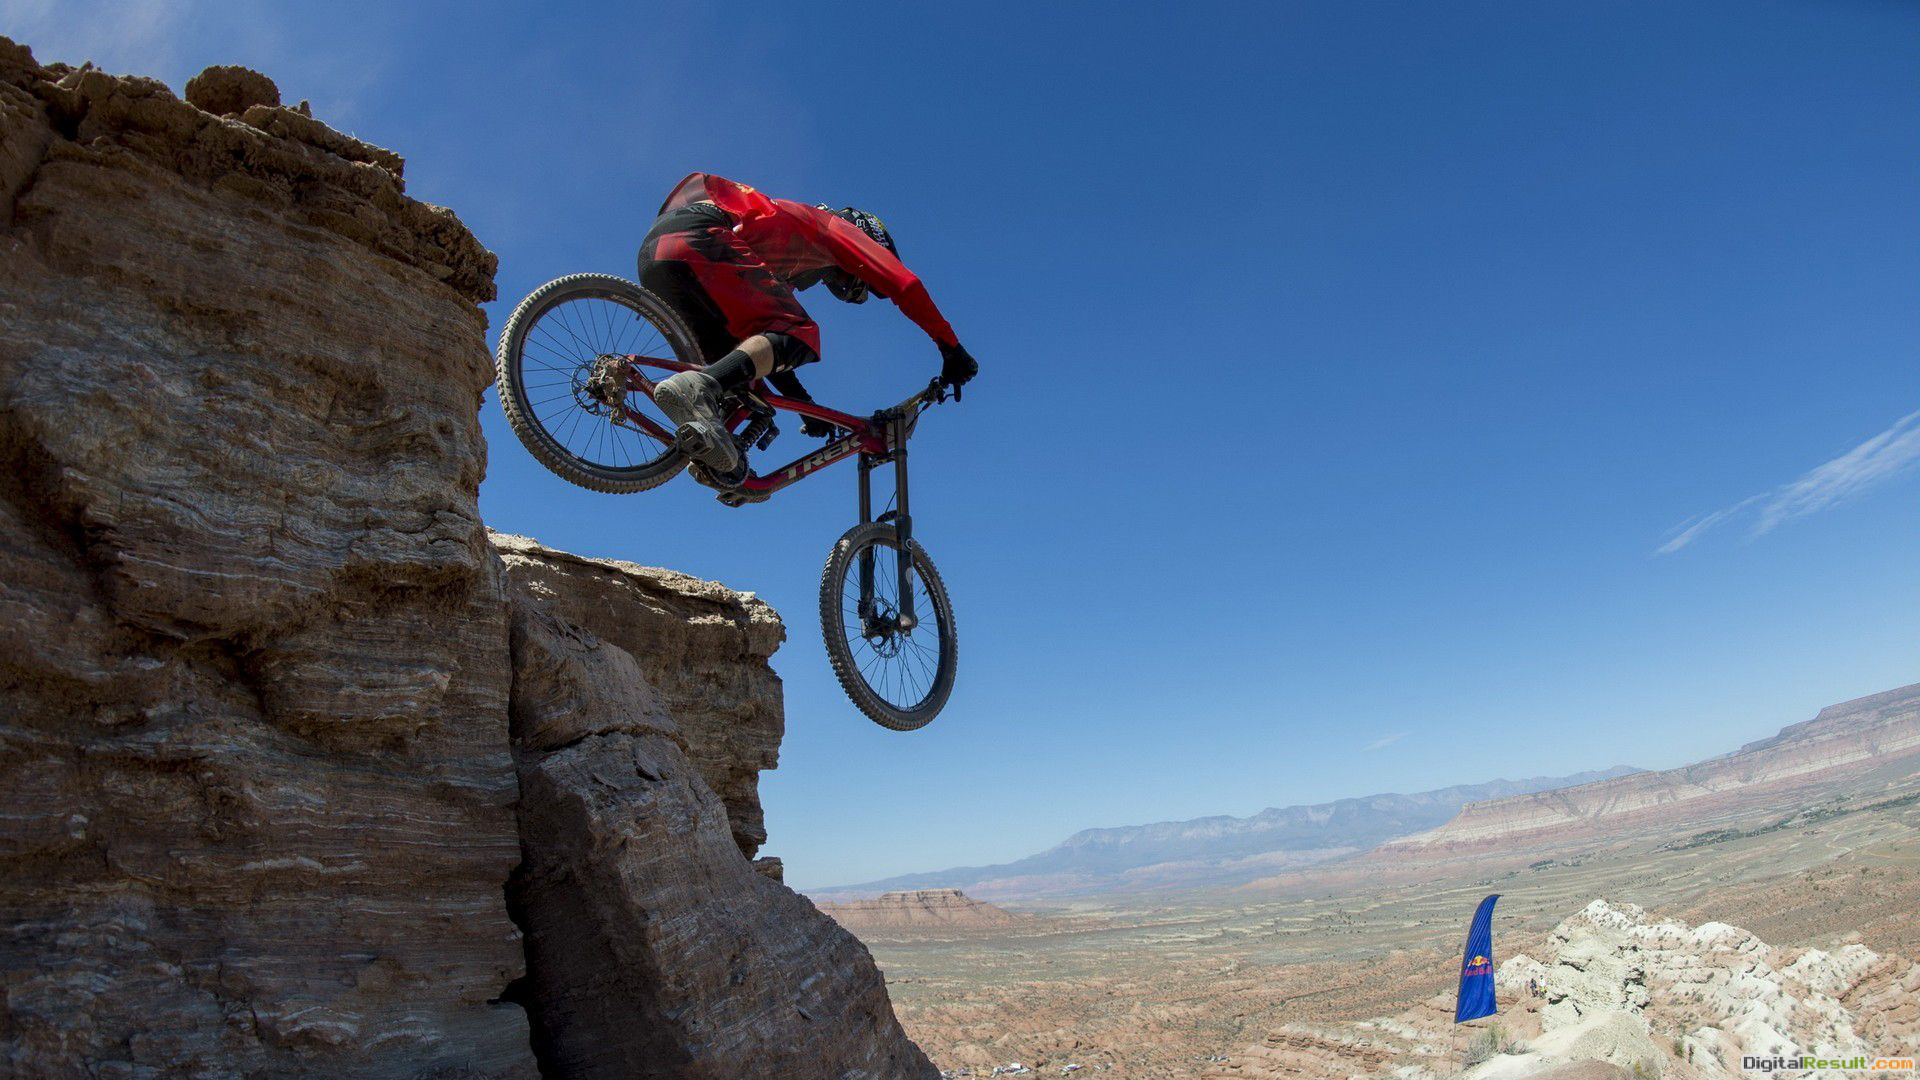 Cool Mountain Bike Sport Wallpaper HD 175 Wallpaper with 1920x1080 476